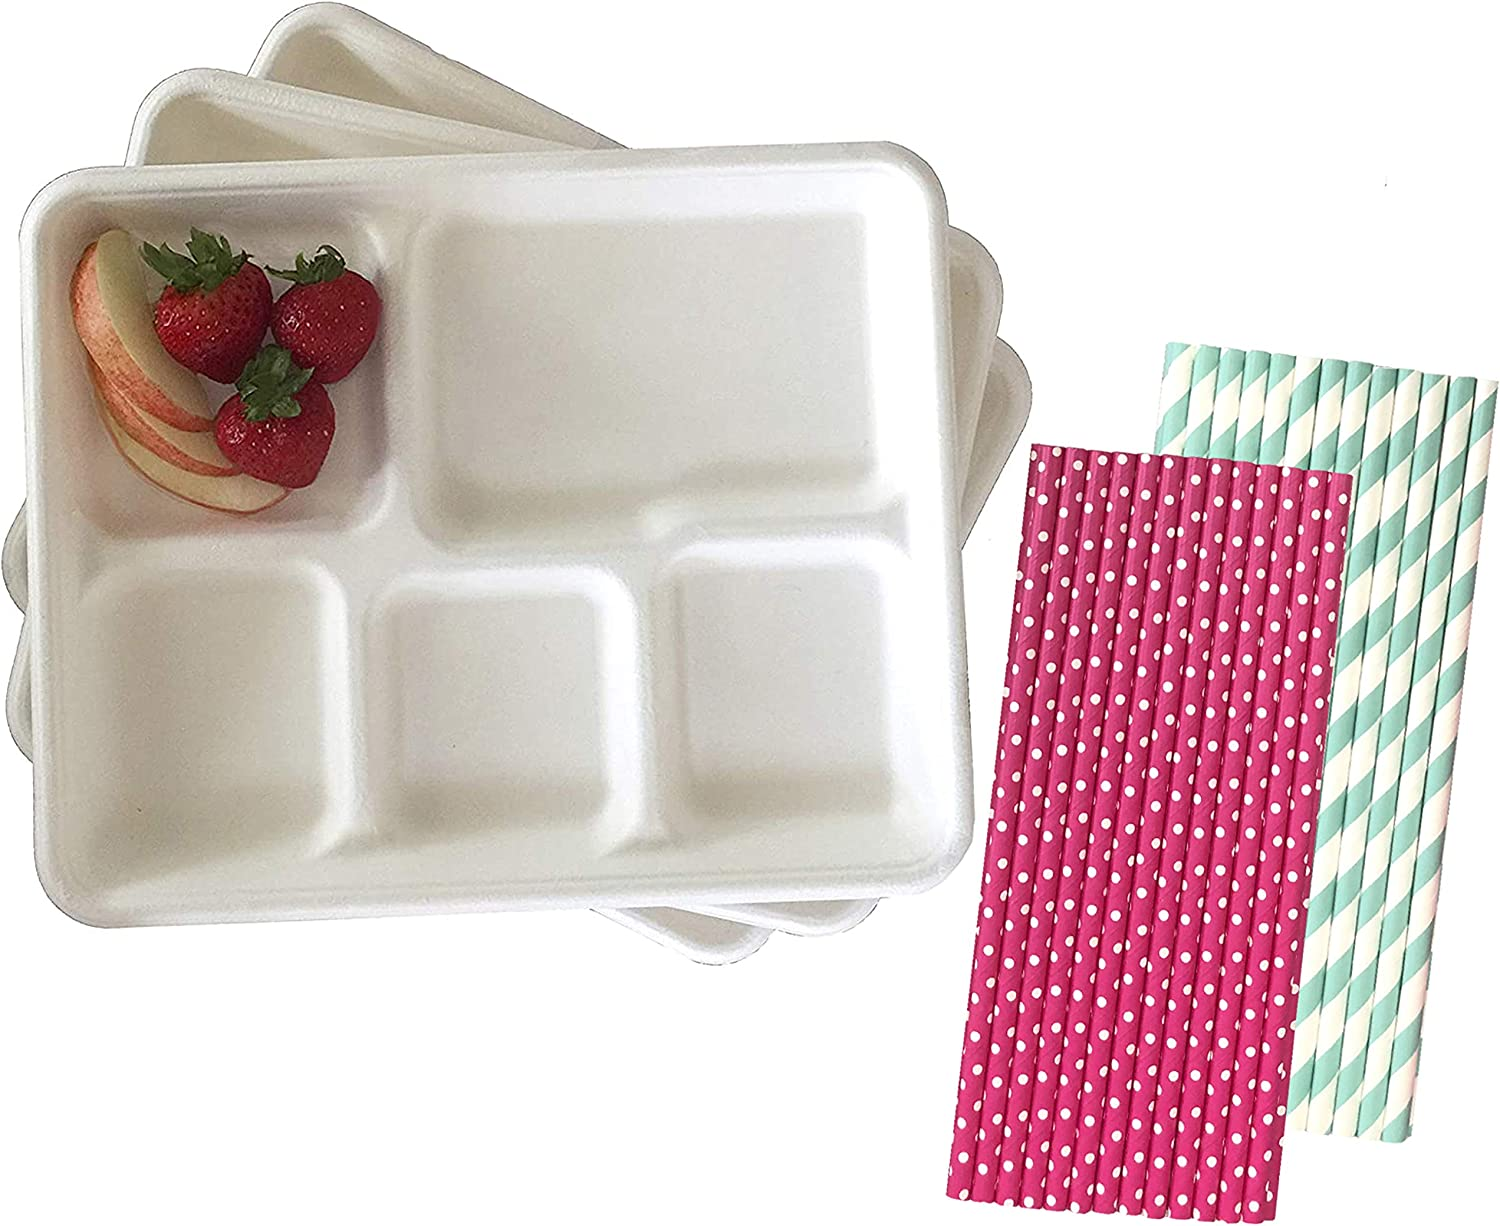 Compostable White Paper 5 Compartment School Lunch Trays - Retro Style White - 24 Pack and 50 Paper Drinking Straws